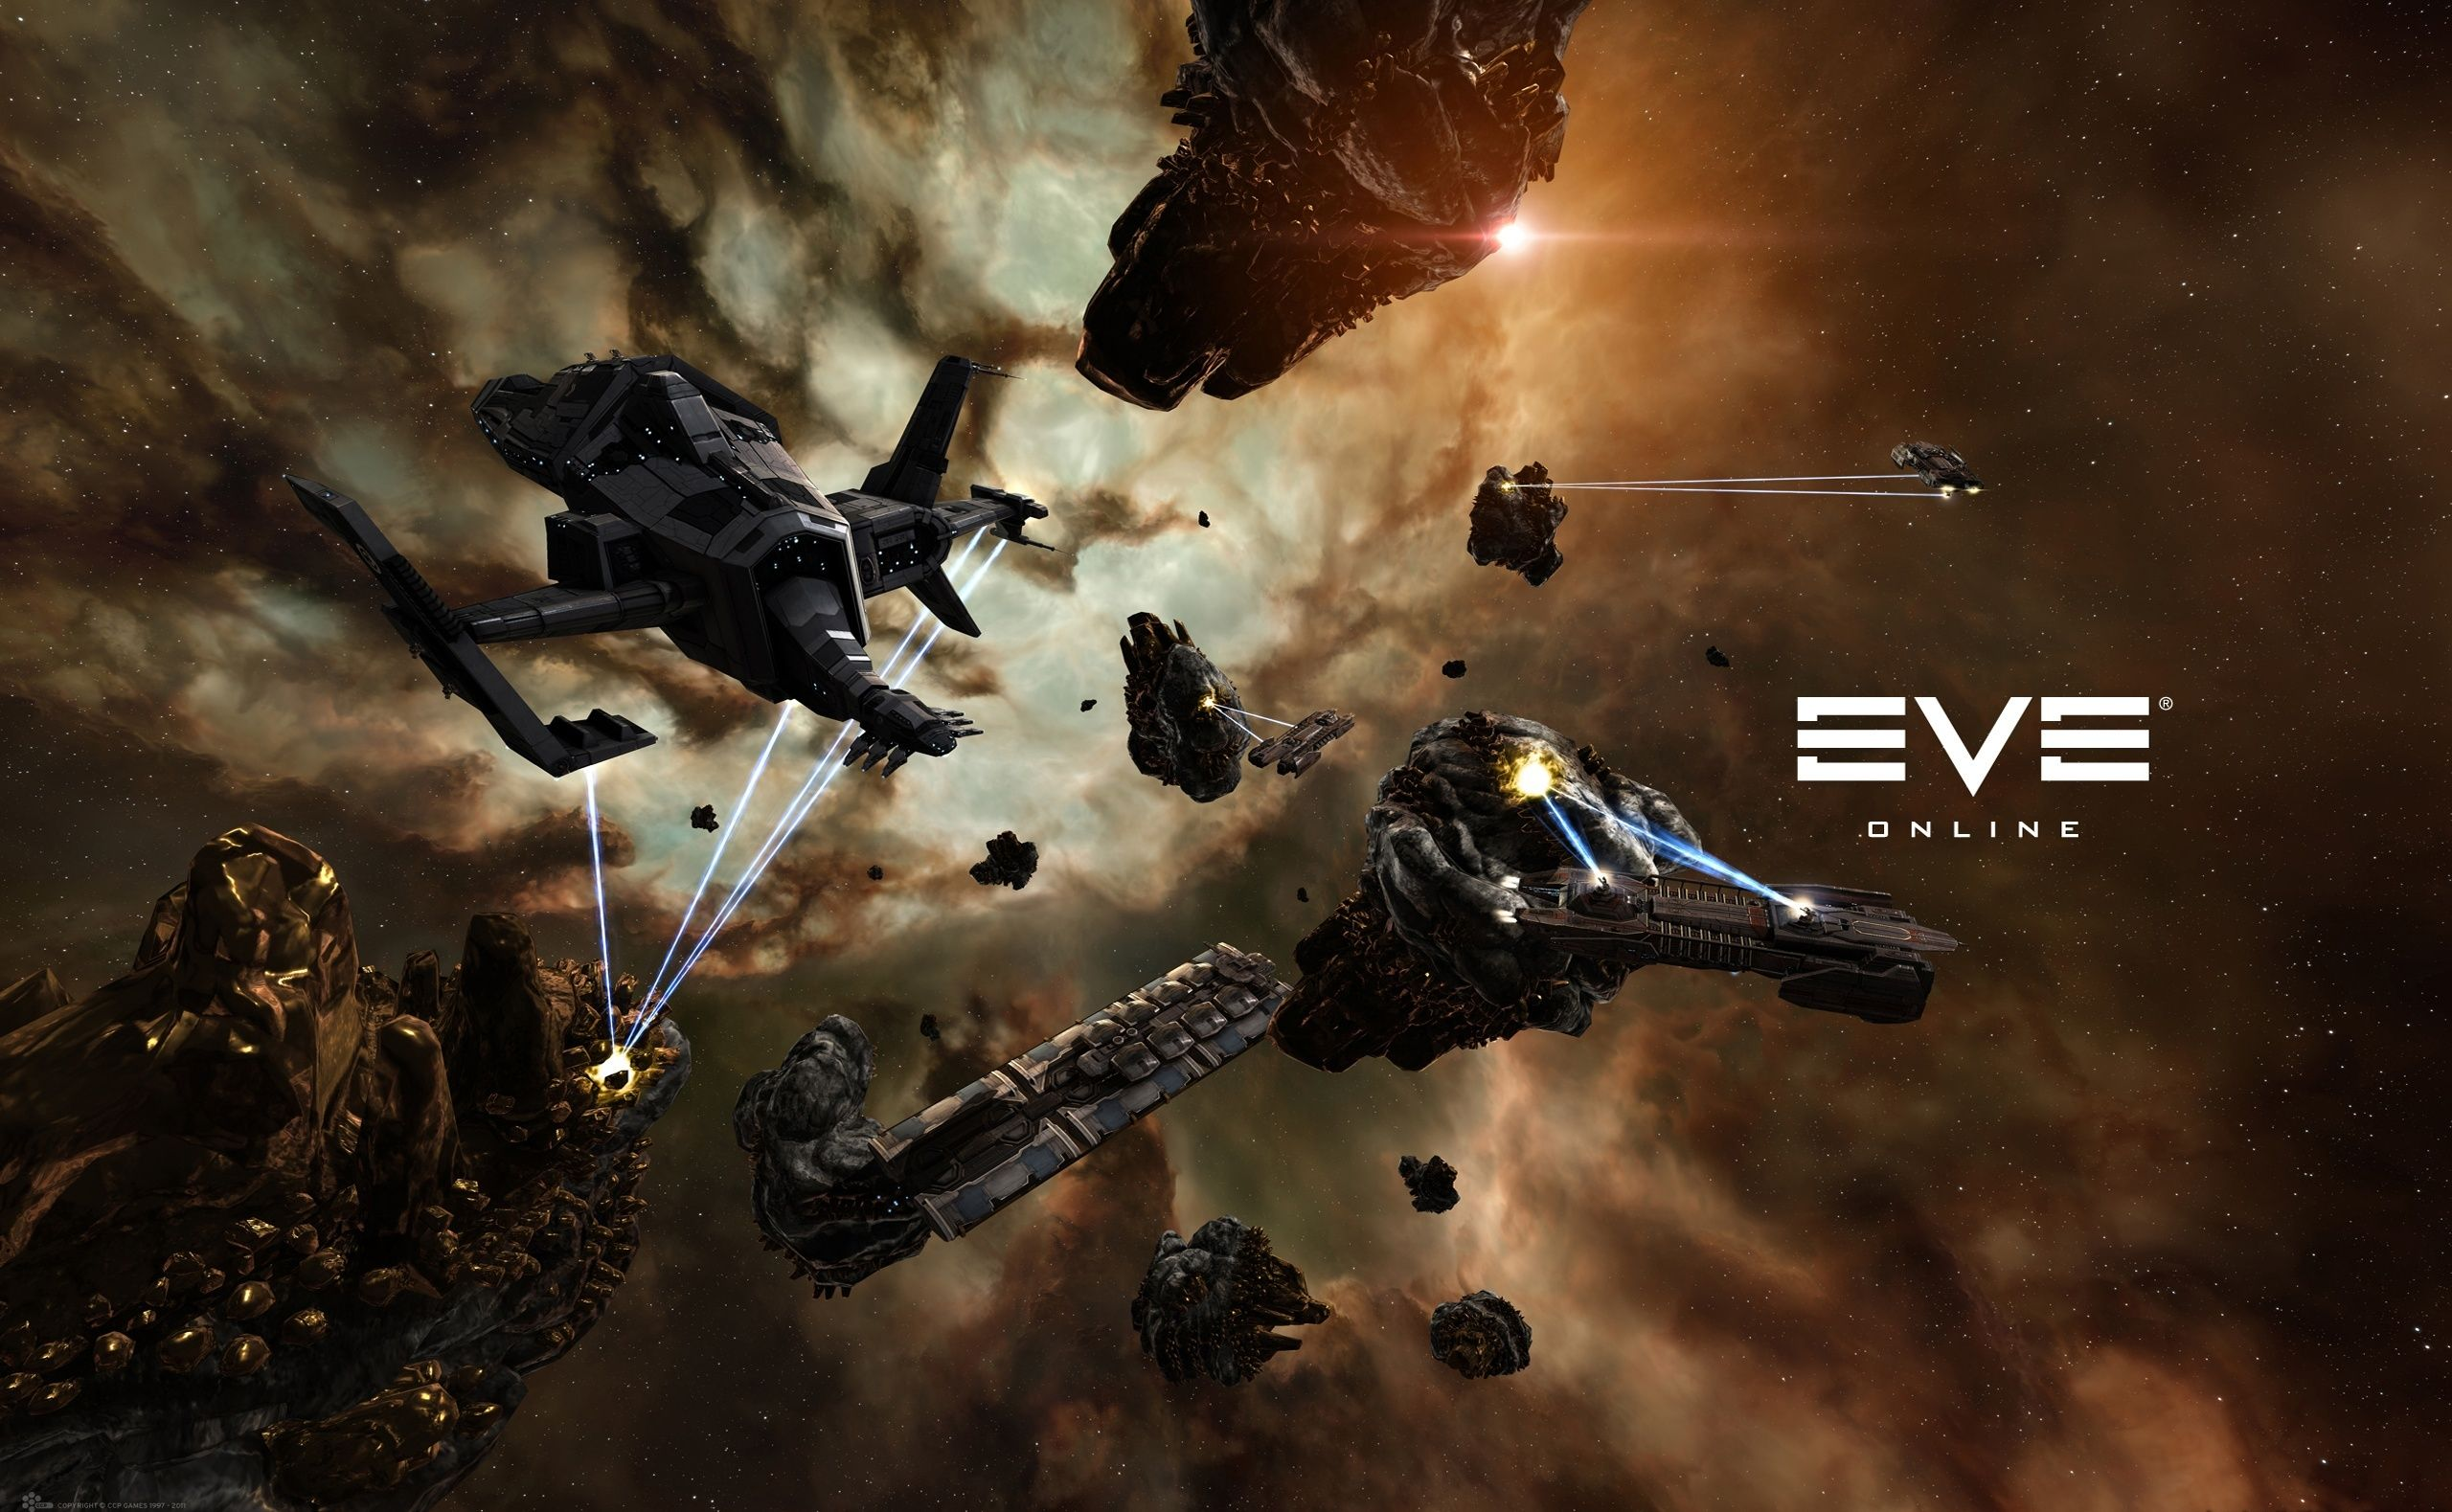 Eve Online 14346 2560x1579 Px Hdwallsource Com Eve Online Wallpaper Full Hd Pictures